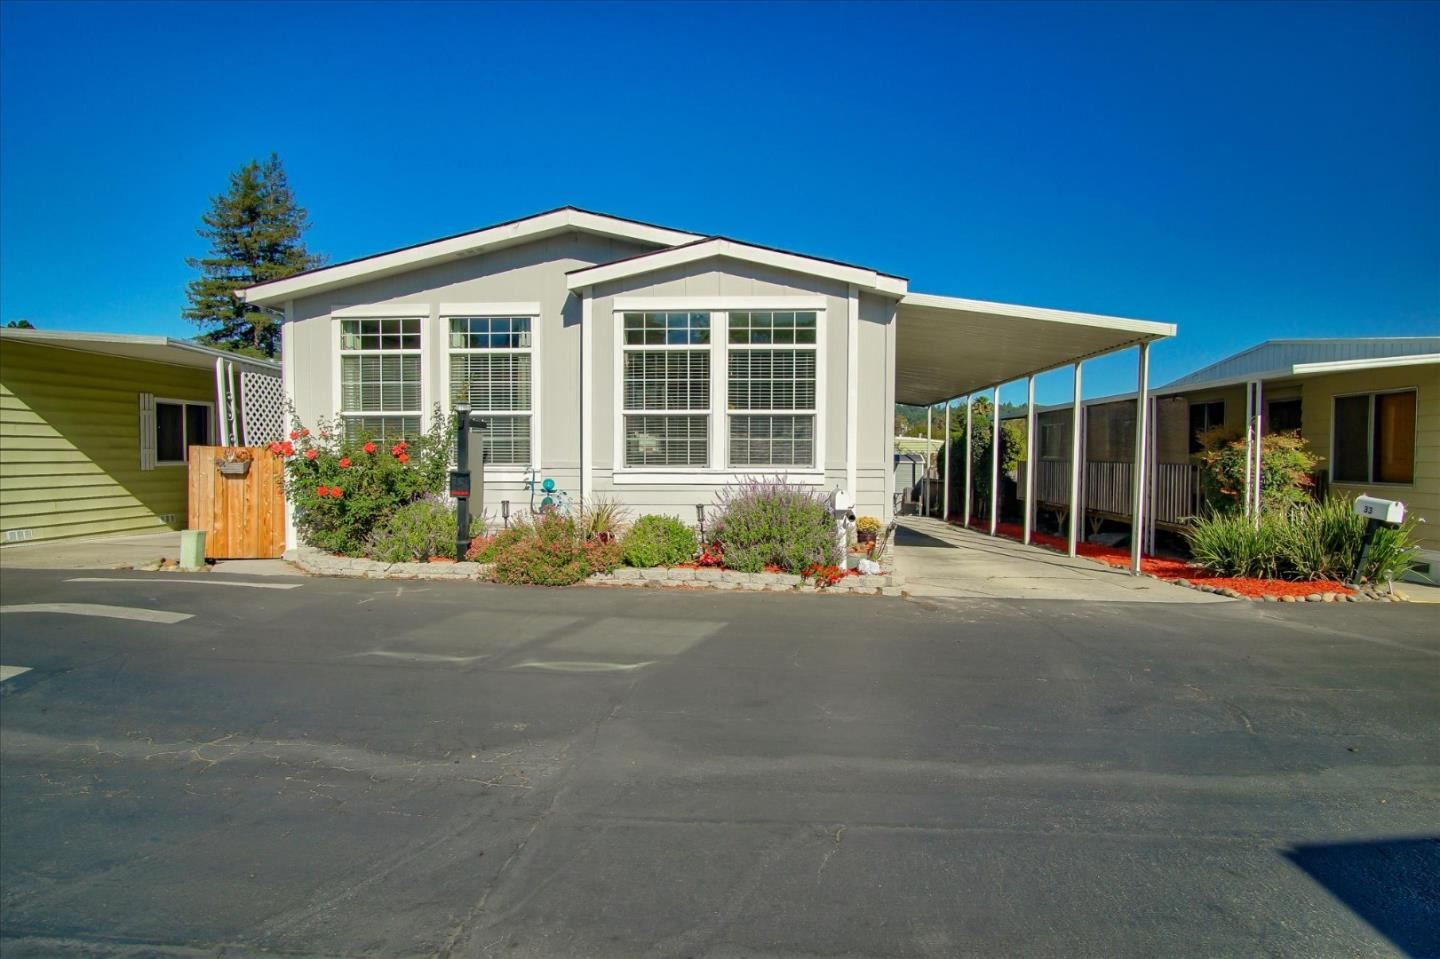 444 Whispering Pines DR 34, Scotts Valley, CA 95066 - #: ML81812244